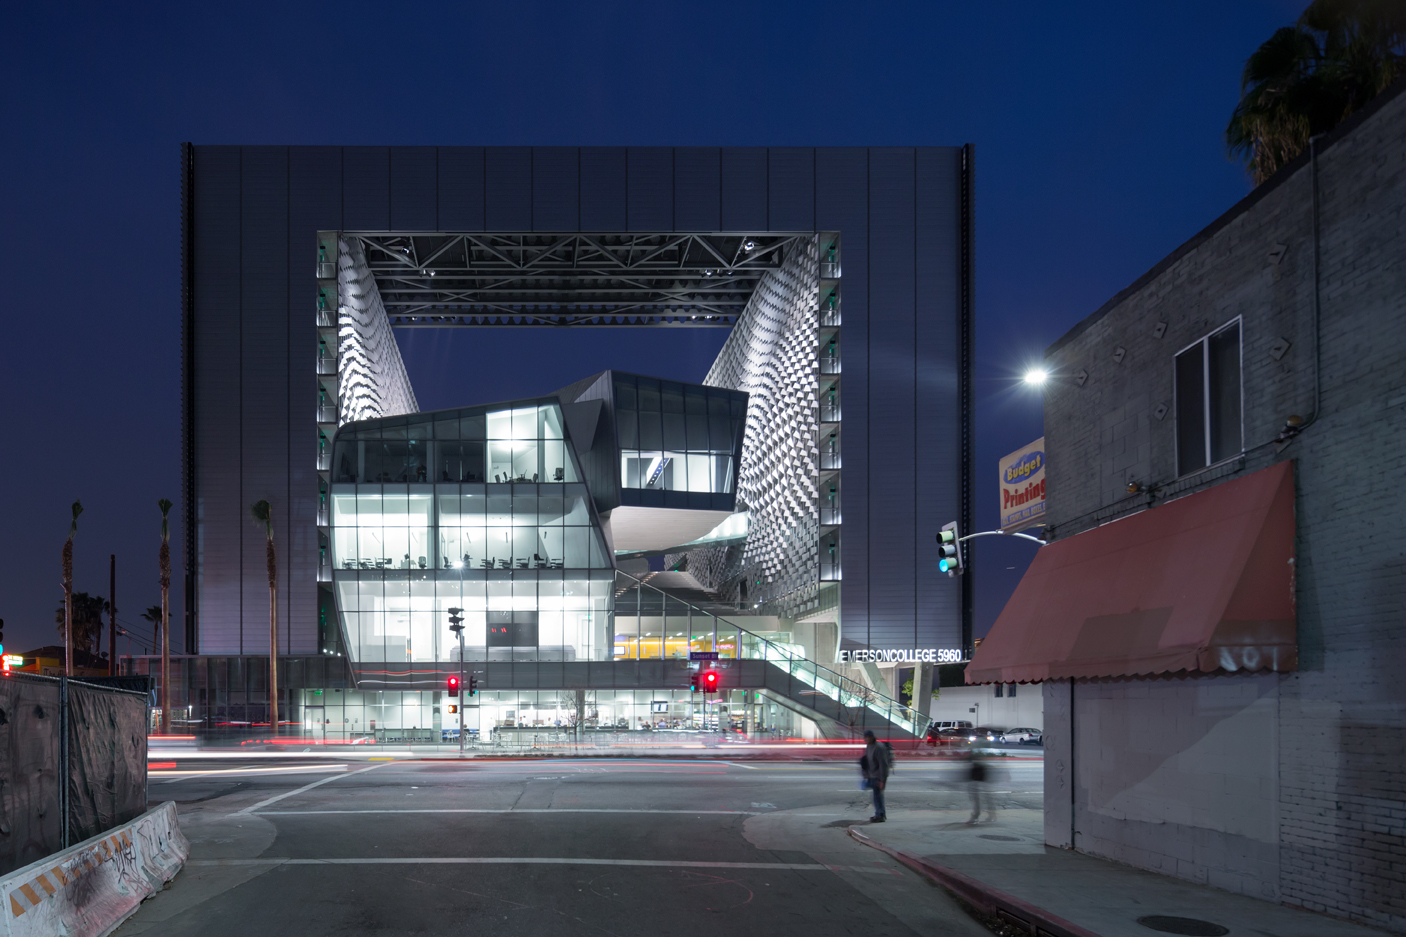 EMERSON COLLEGE LOS ANGELES